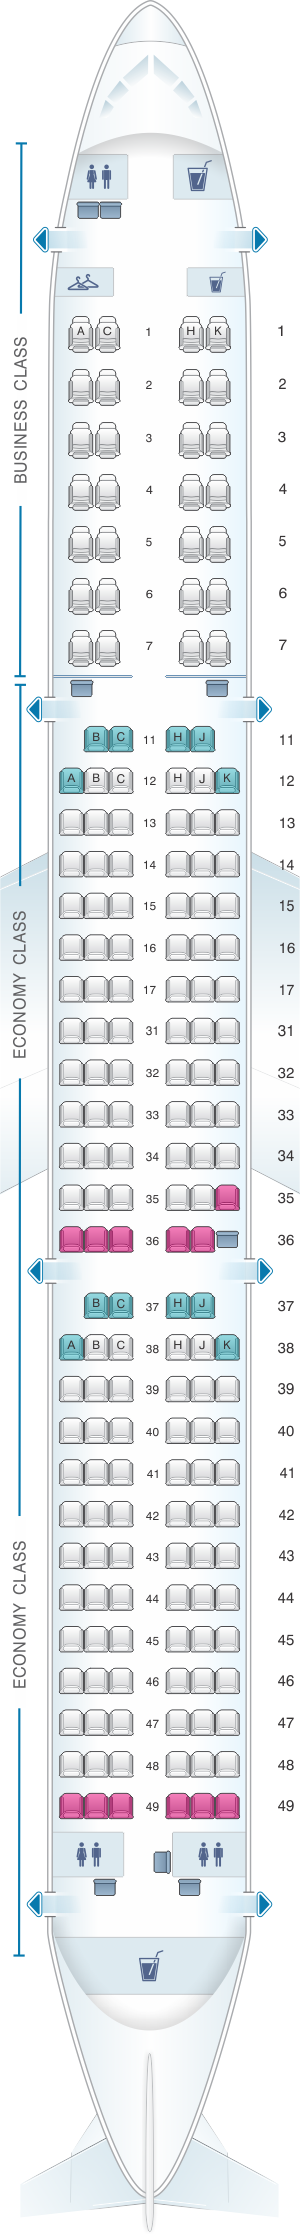 Seat map for Air Astana Airbus A321 231 Config.2